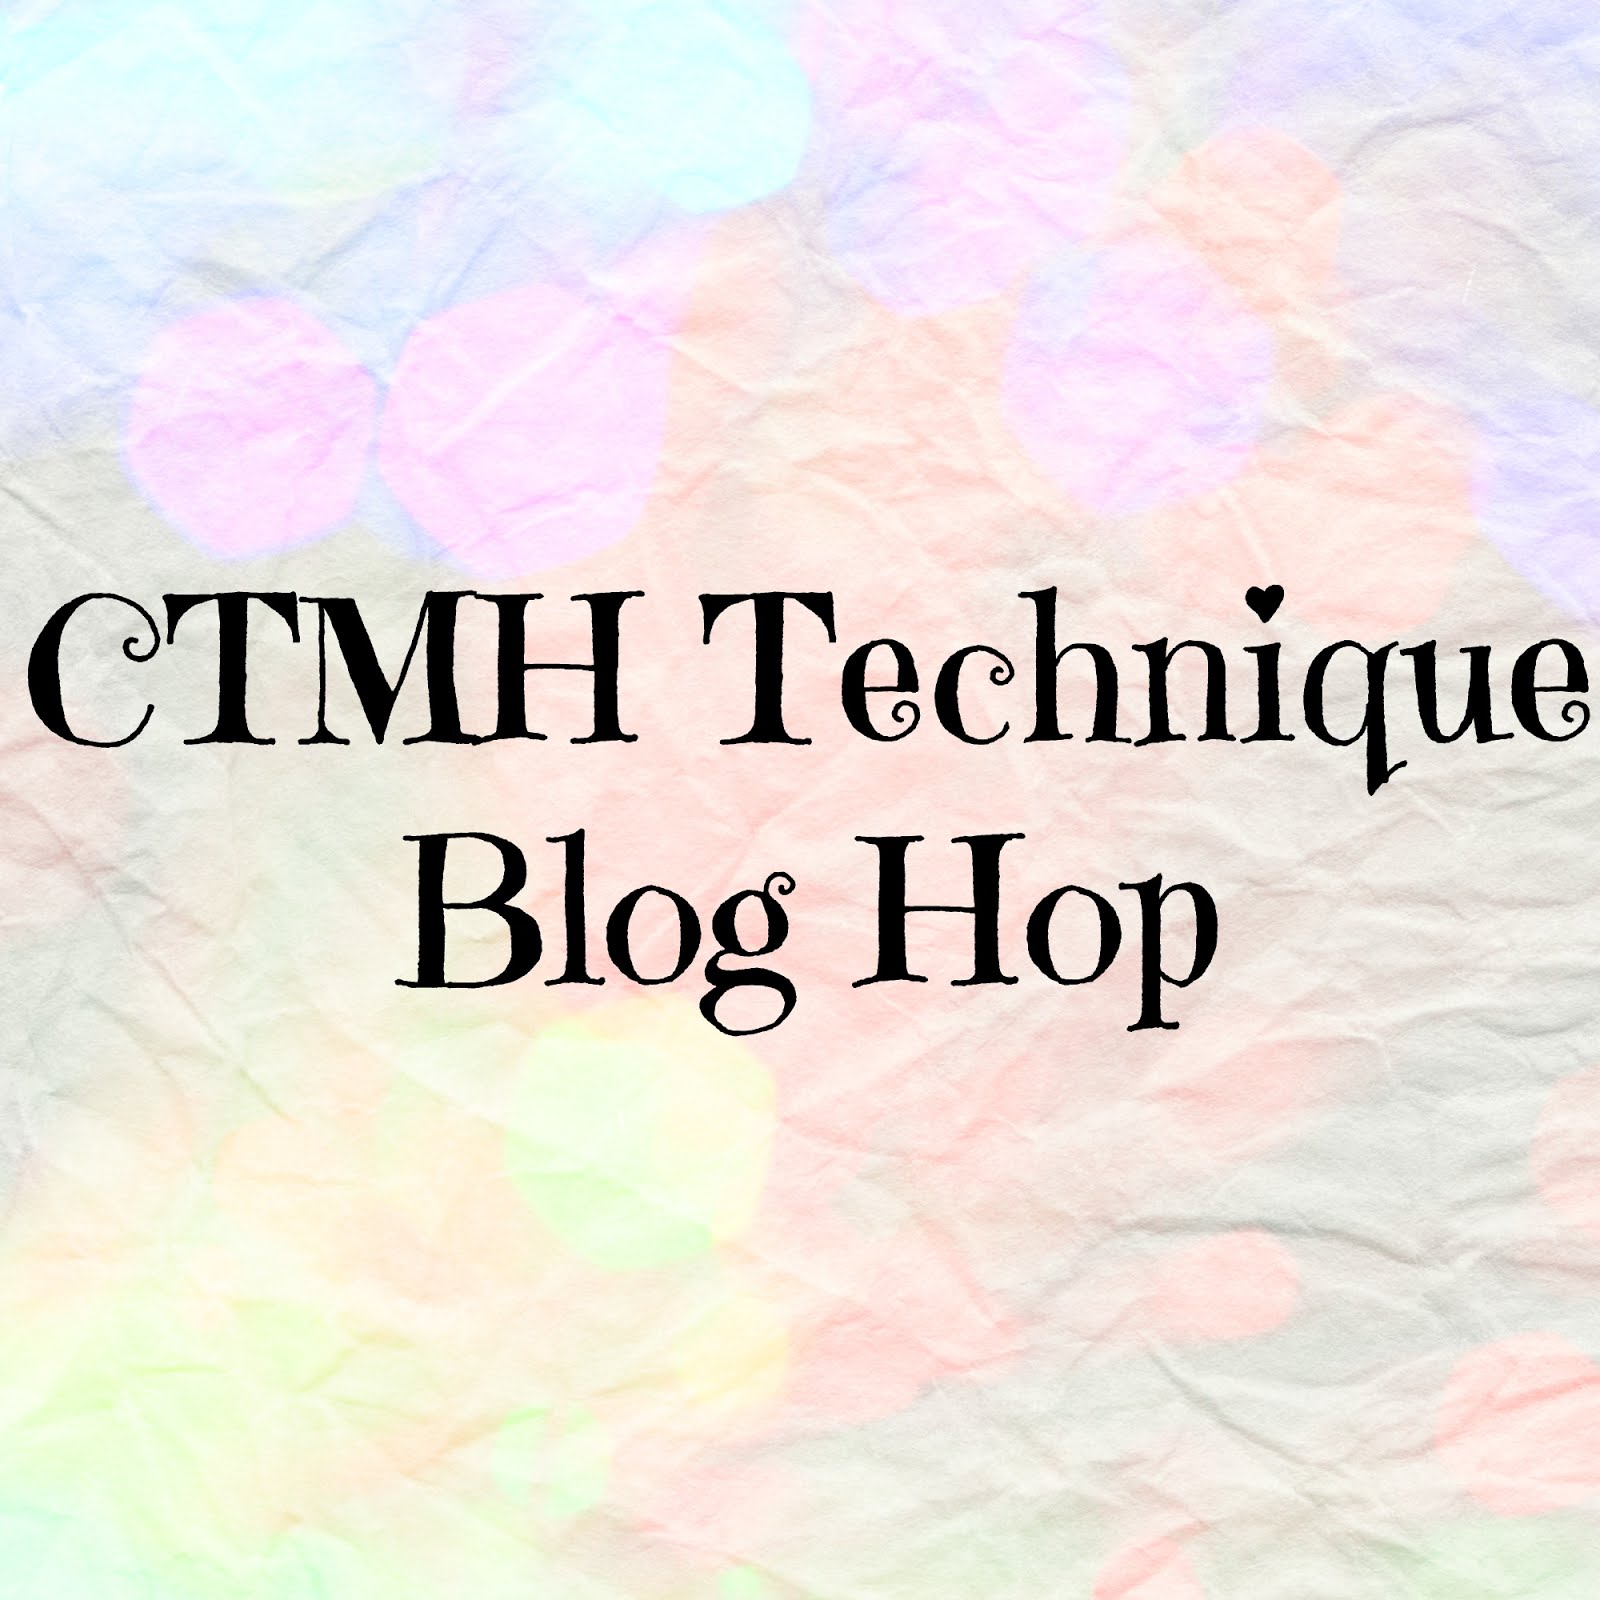 CTMH Technique Blog Hop